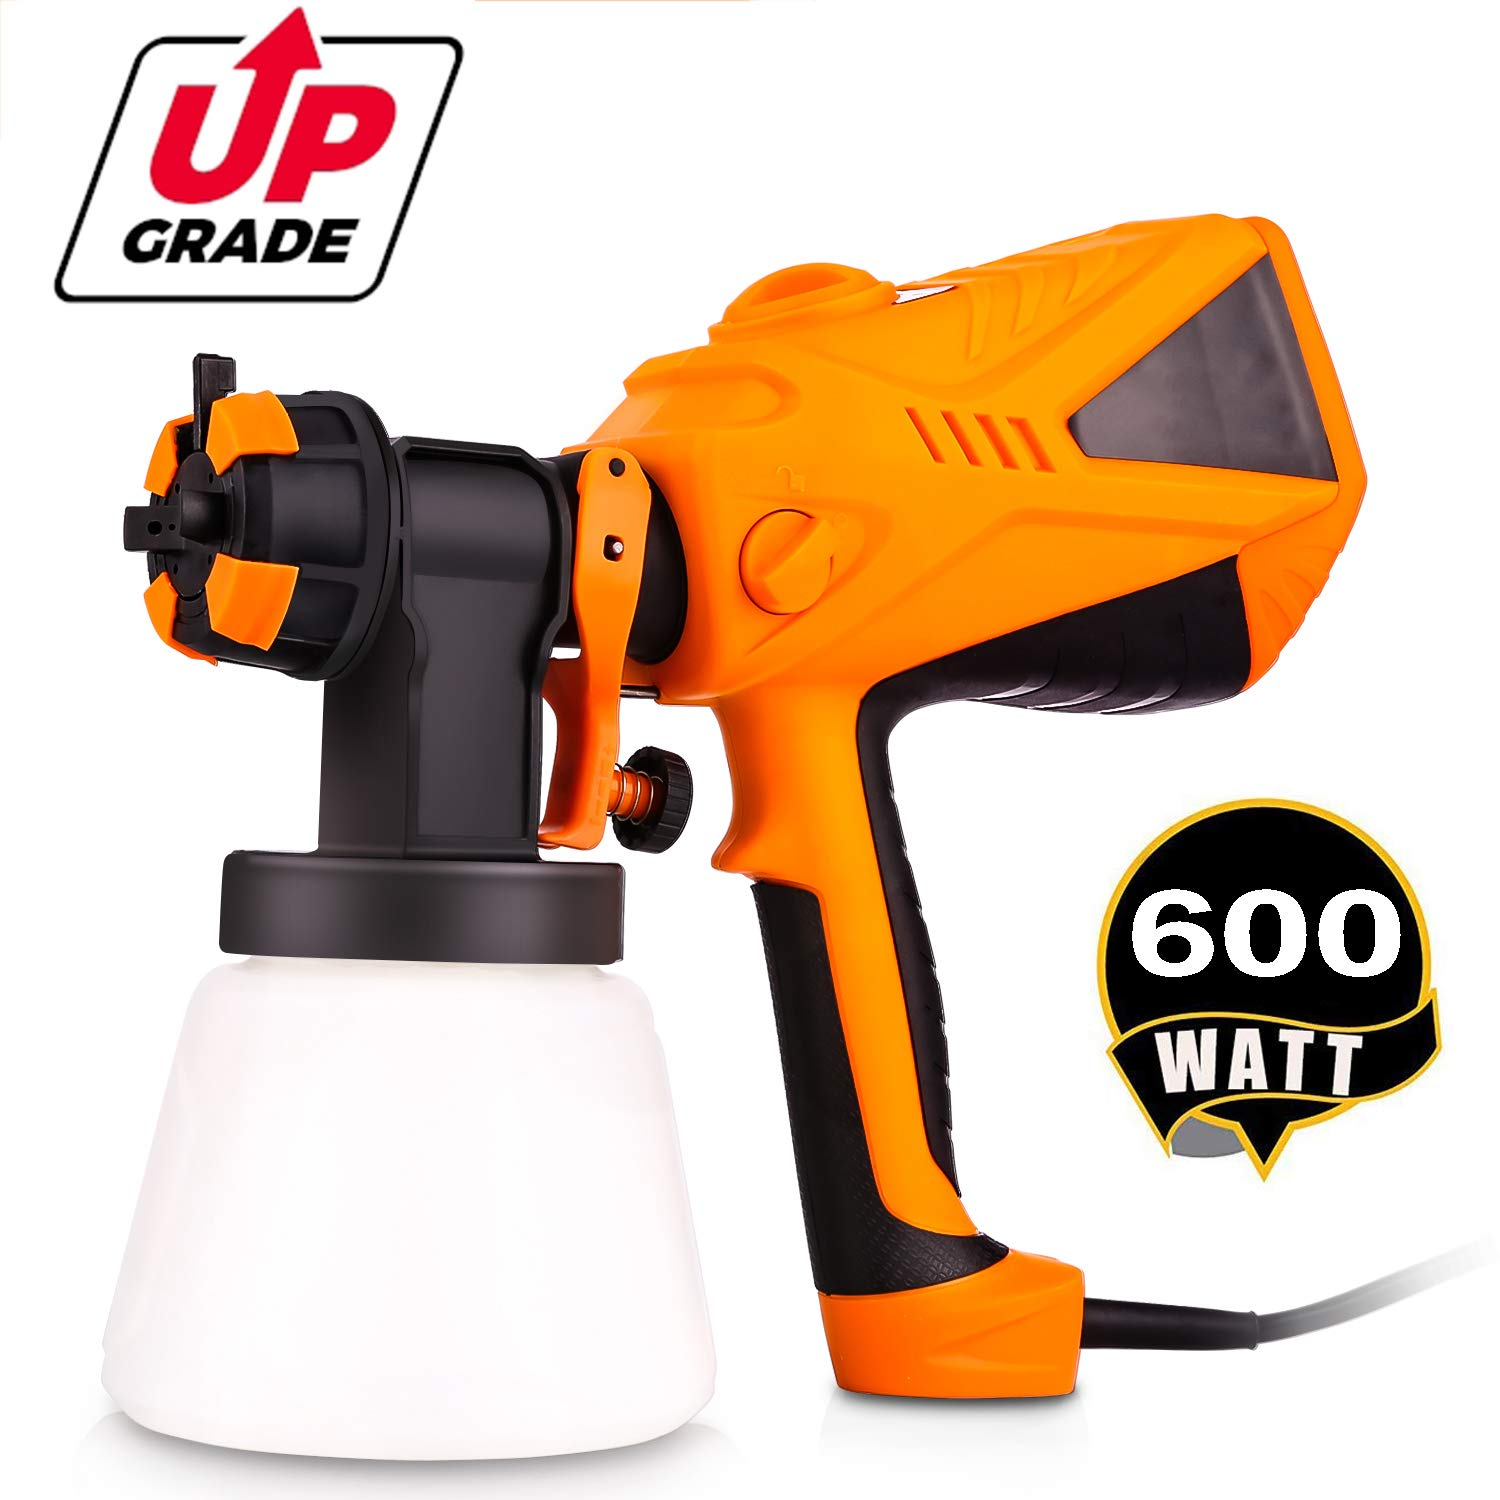 Anfan 600 Watt Electric Spray Gun HVLP Home Paint Sprayer with Three Spray Patterns + Three Nozzle Sizes + Adjustable Valve Knob + 1000ml Detachable Container + 4.9ft Power Line